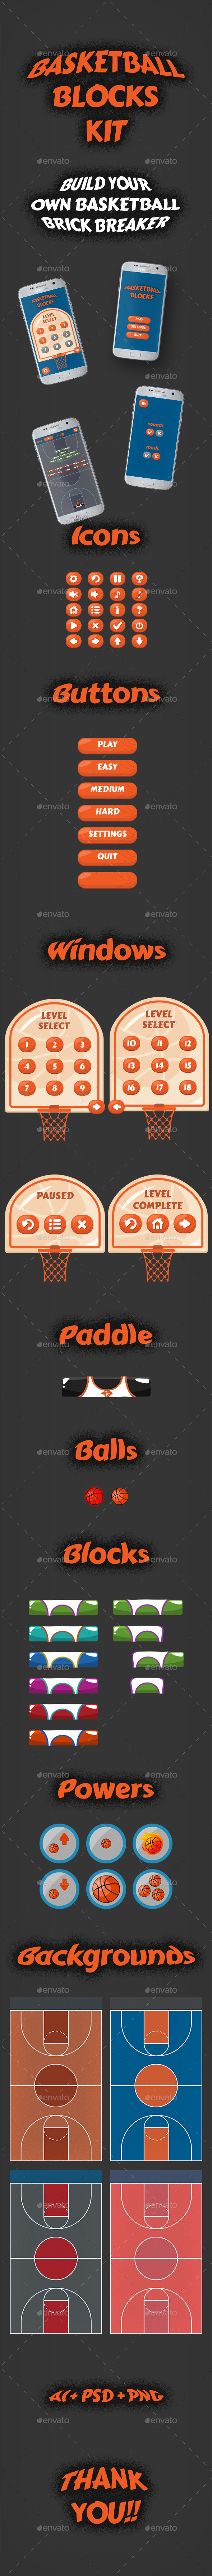 Basketball Brick Breaking Game Kit - Game Kits Game Assets